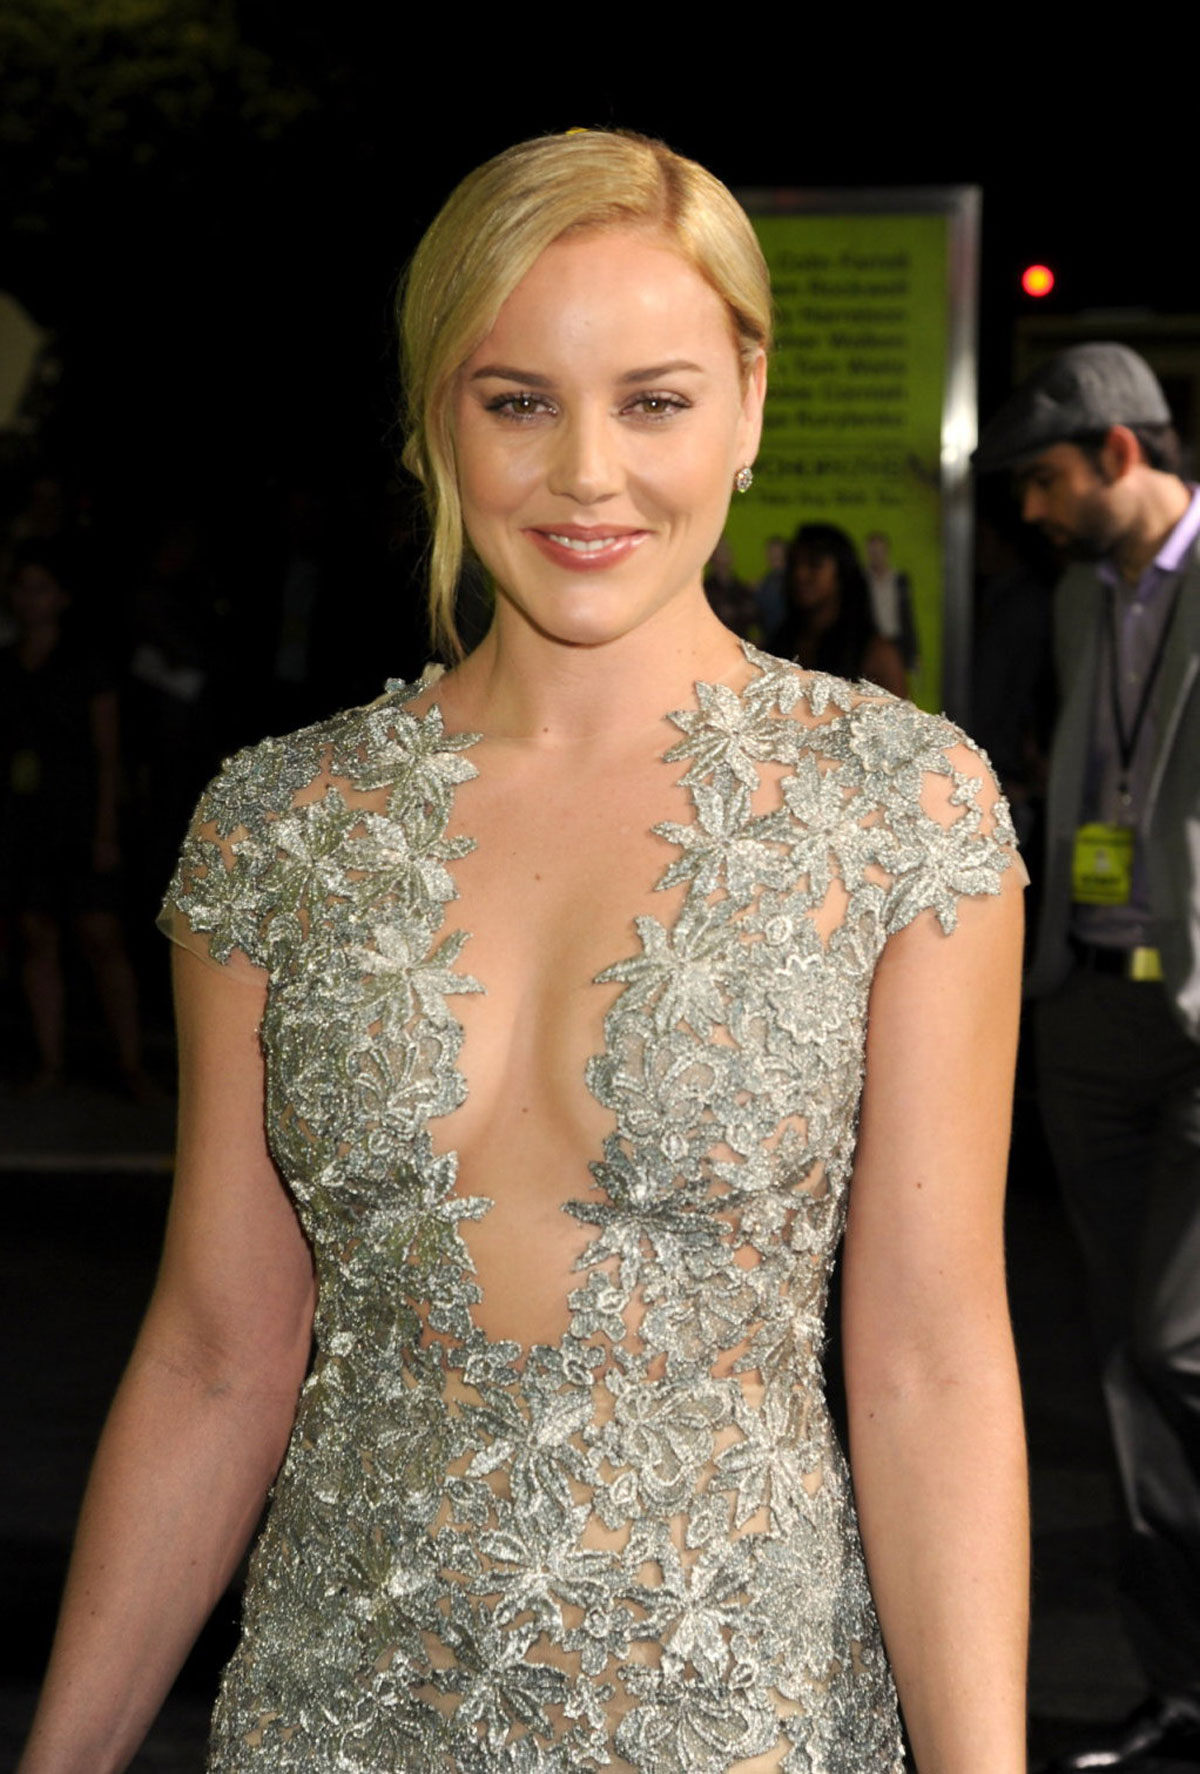 Fotos Abbie Cornish nudes (37 foto and video), Ass, Hot, Selfie, bra 2020